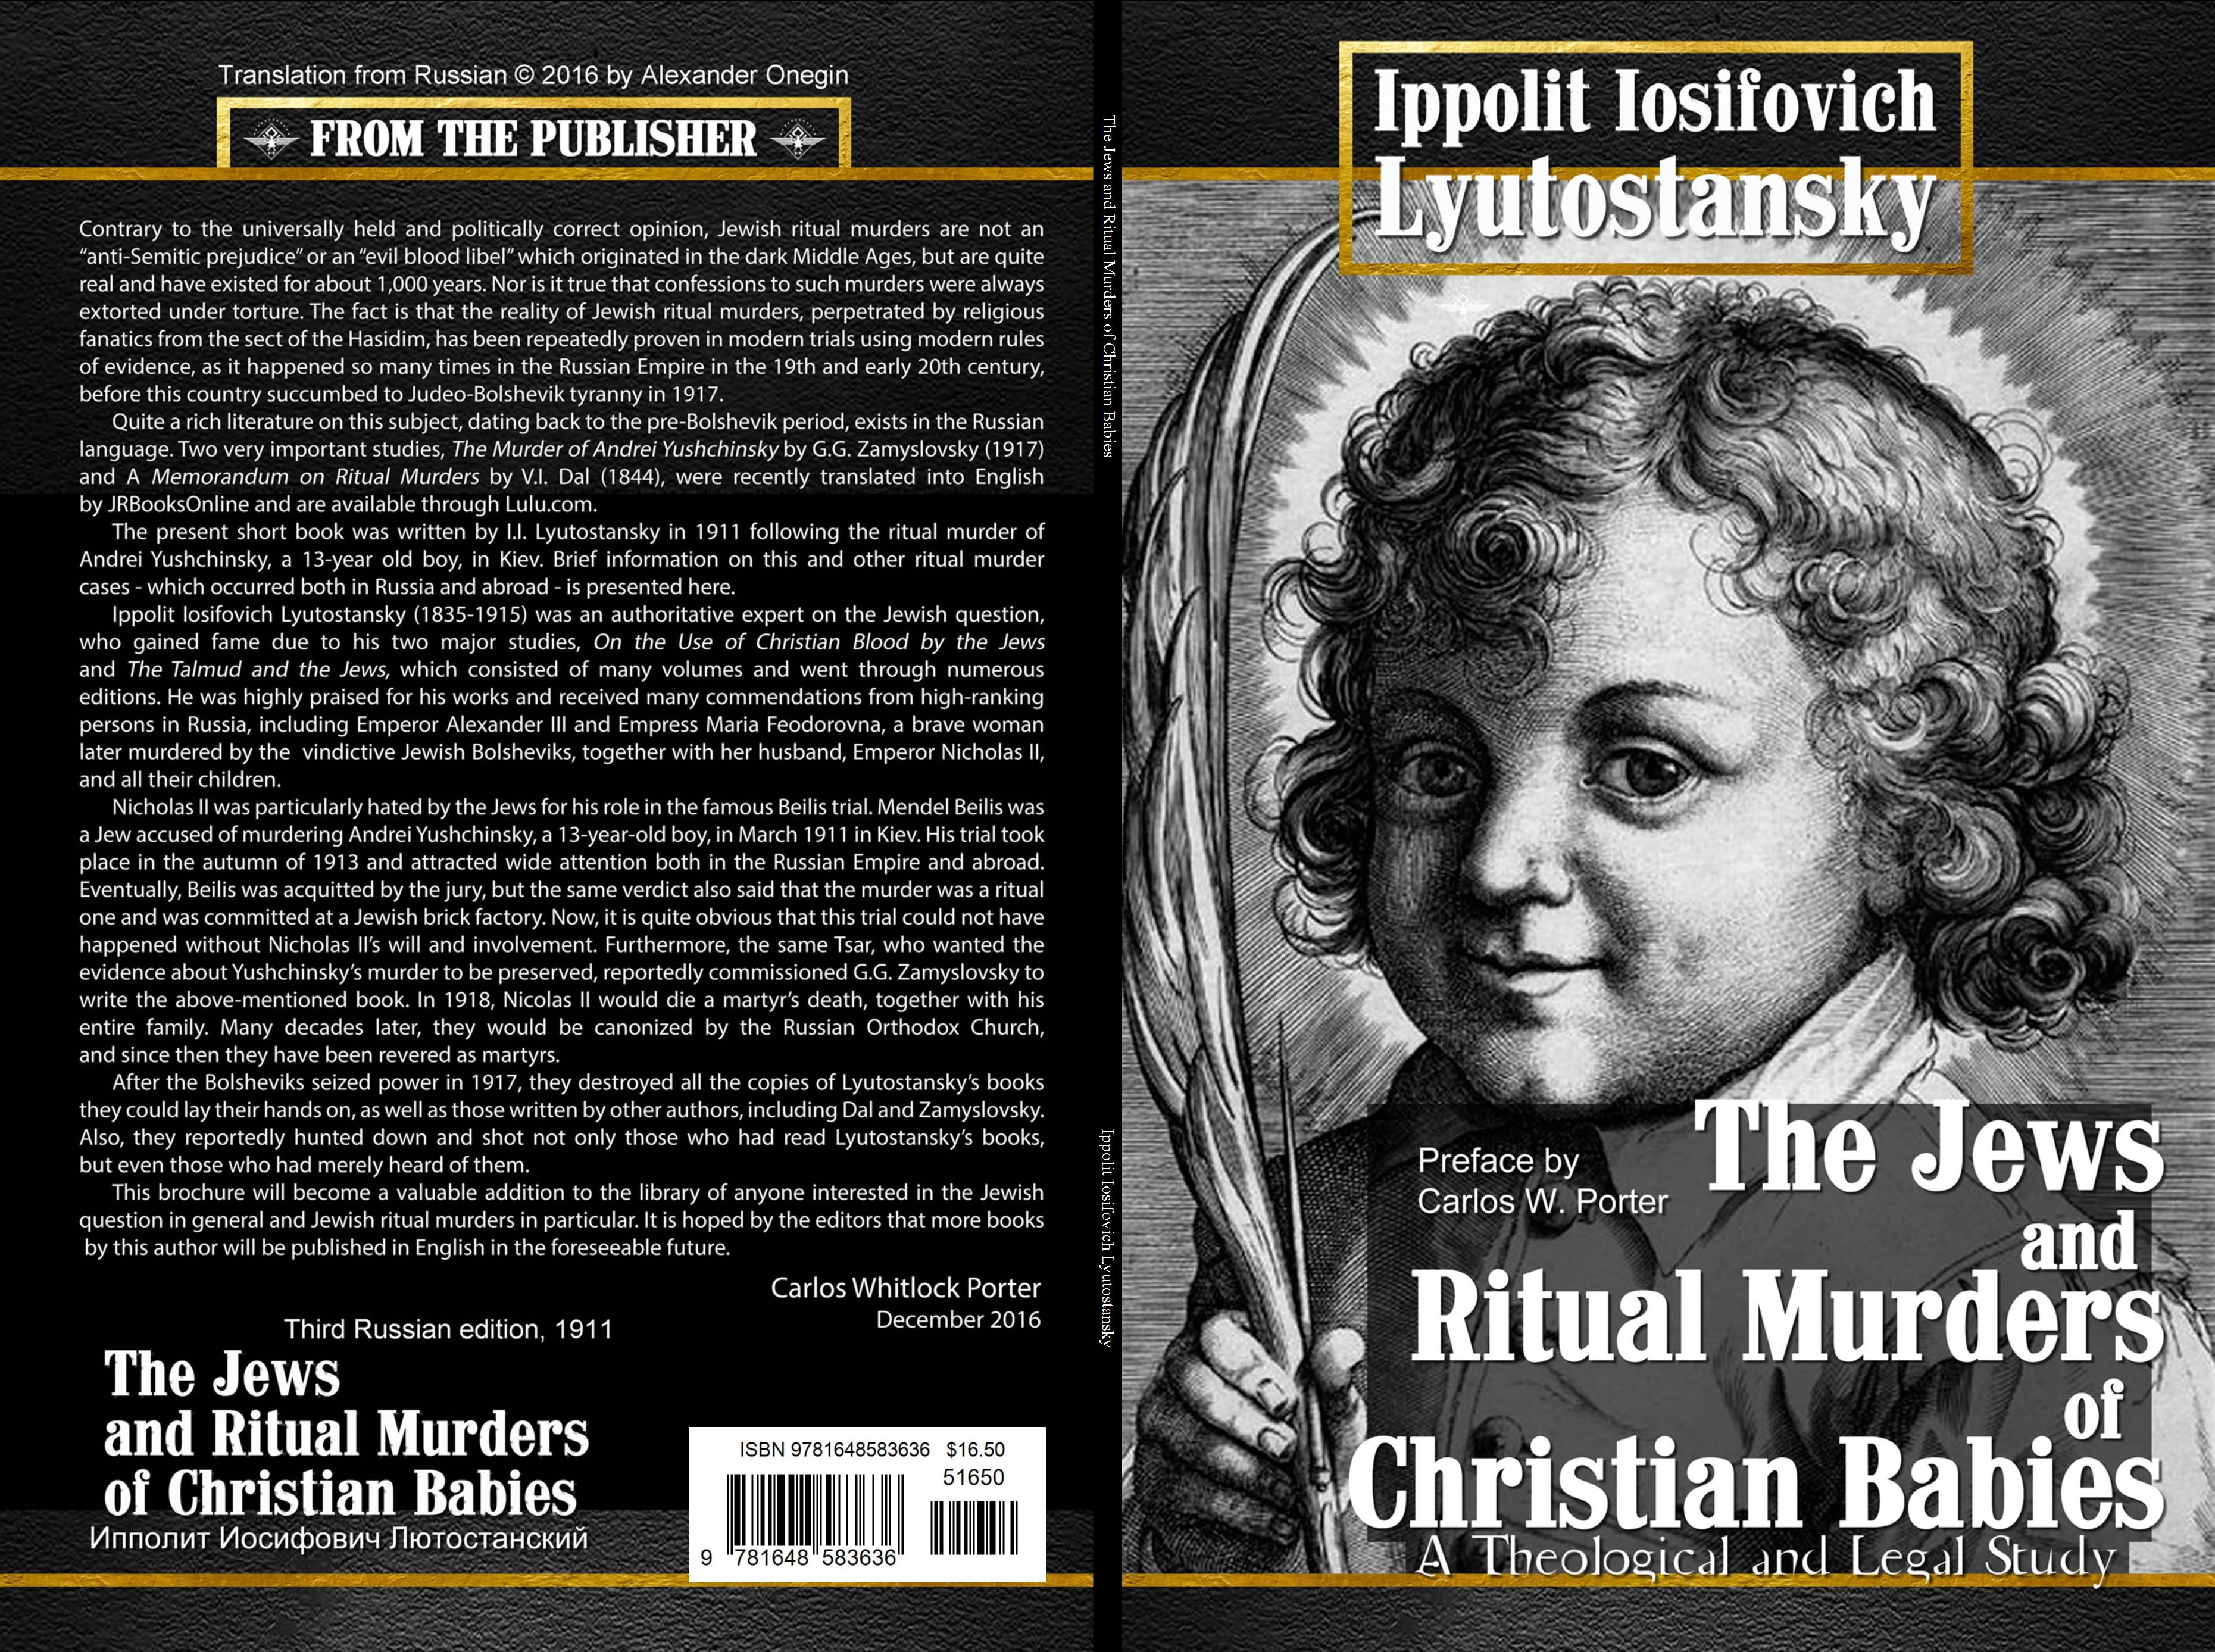 The Jews and Ritual Murders cover image